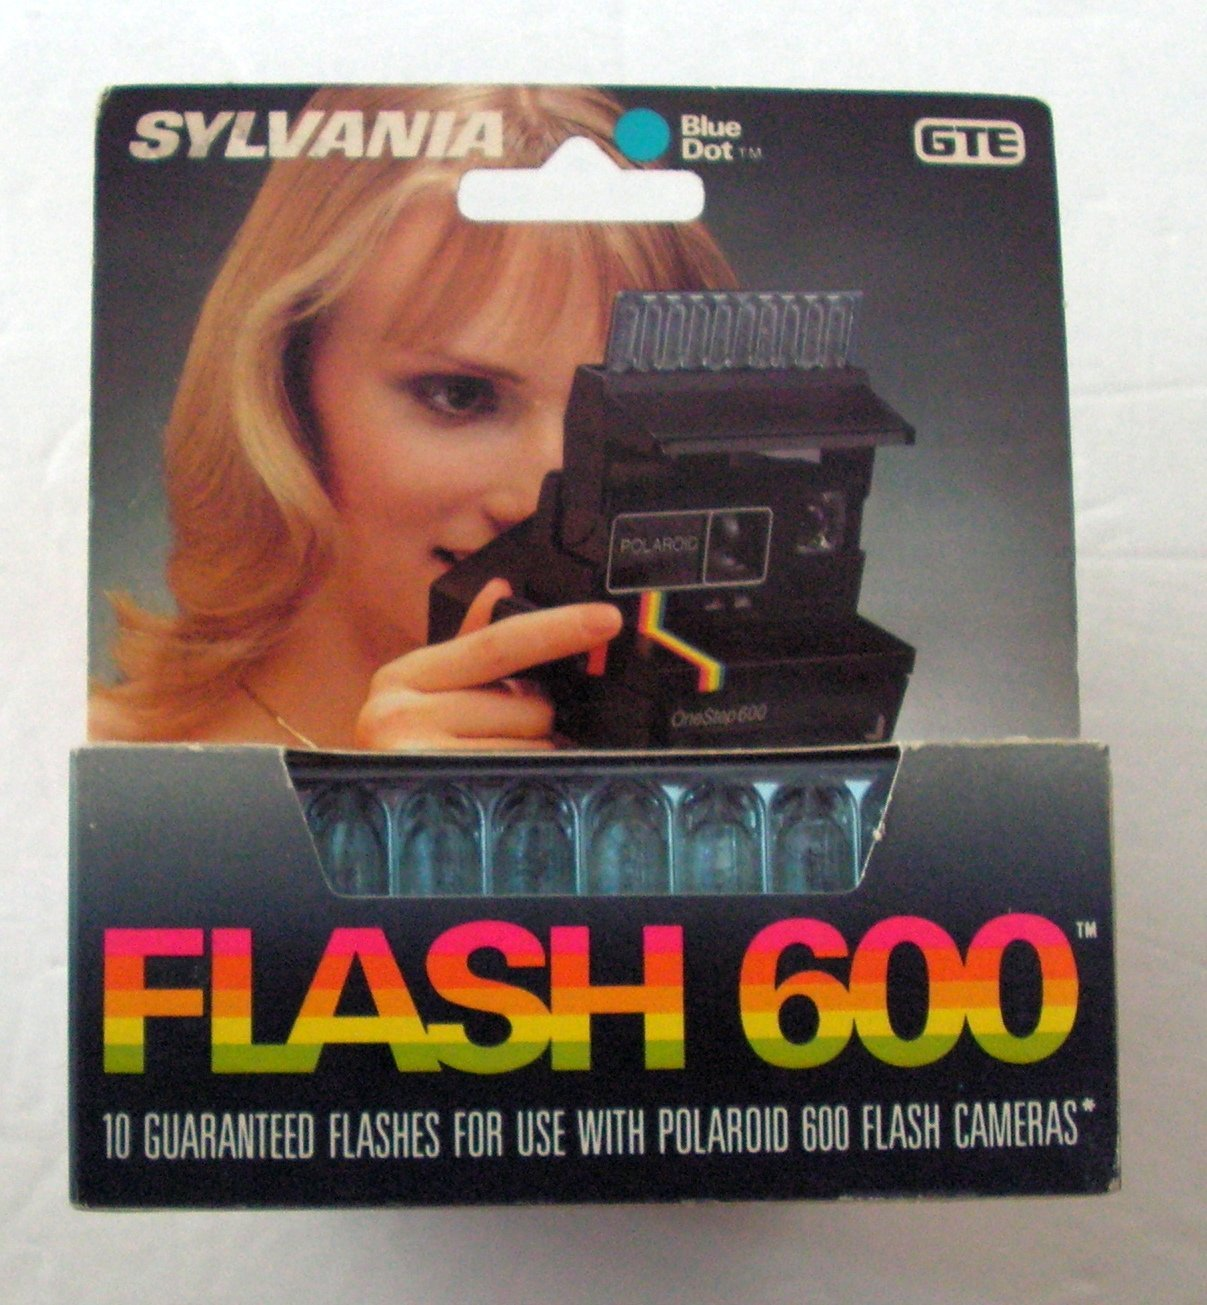 Sylvania Blue Dot Flashbar ''Flash 600'' GTE 10 flashes for Polaroid 600 Cameras by SYLVANIA